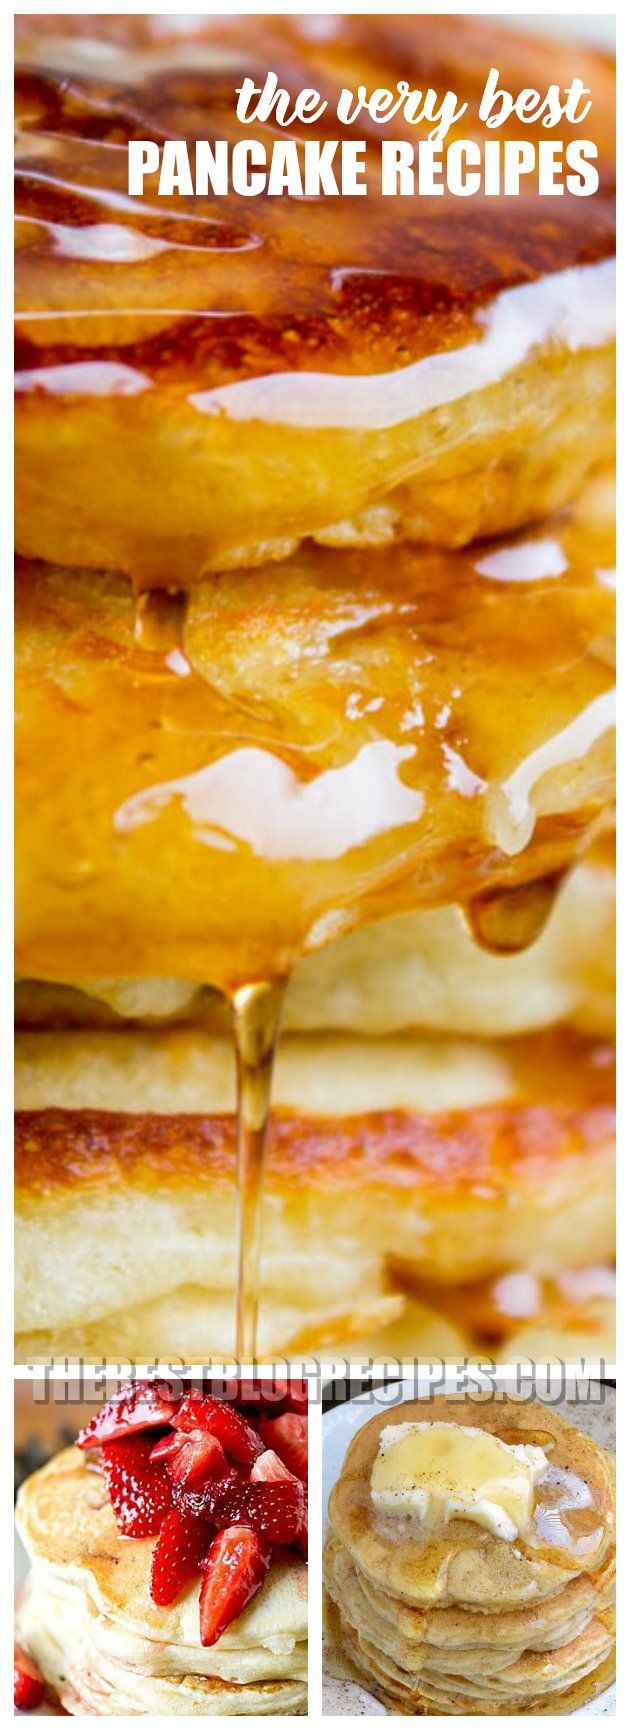 For tasty breakfast treats and lazy morning meals you need to try The Best Pancake Recipes! These recipes are the most delicious pancakes out there, and we know they will become your new breakfast favorites! via @bestblogrecipes